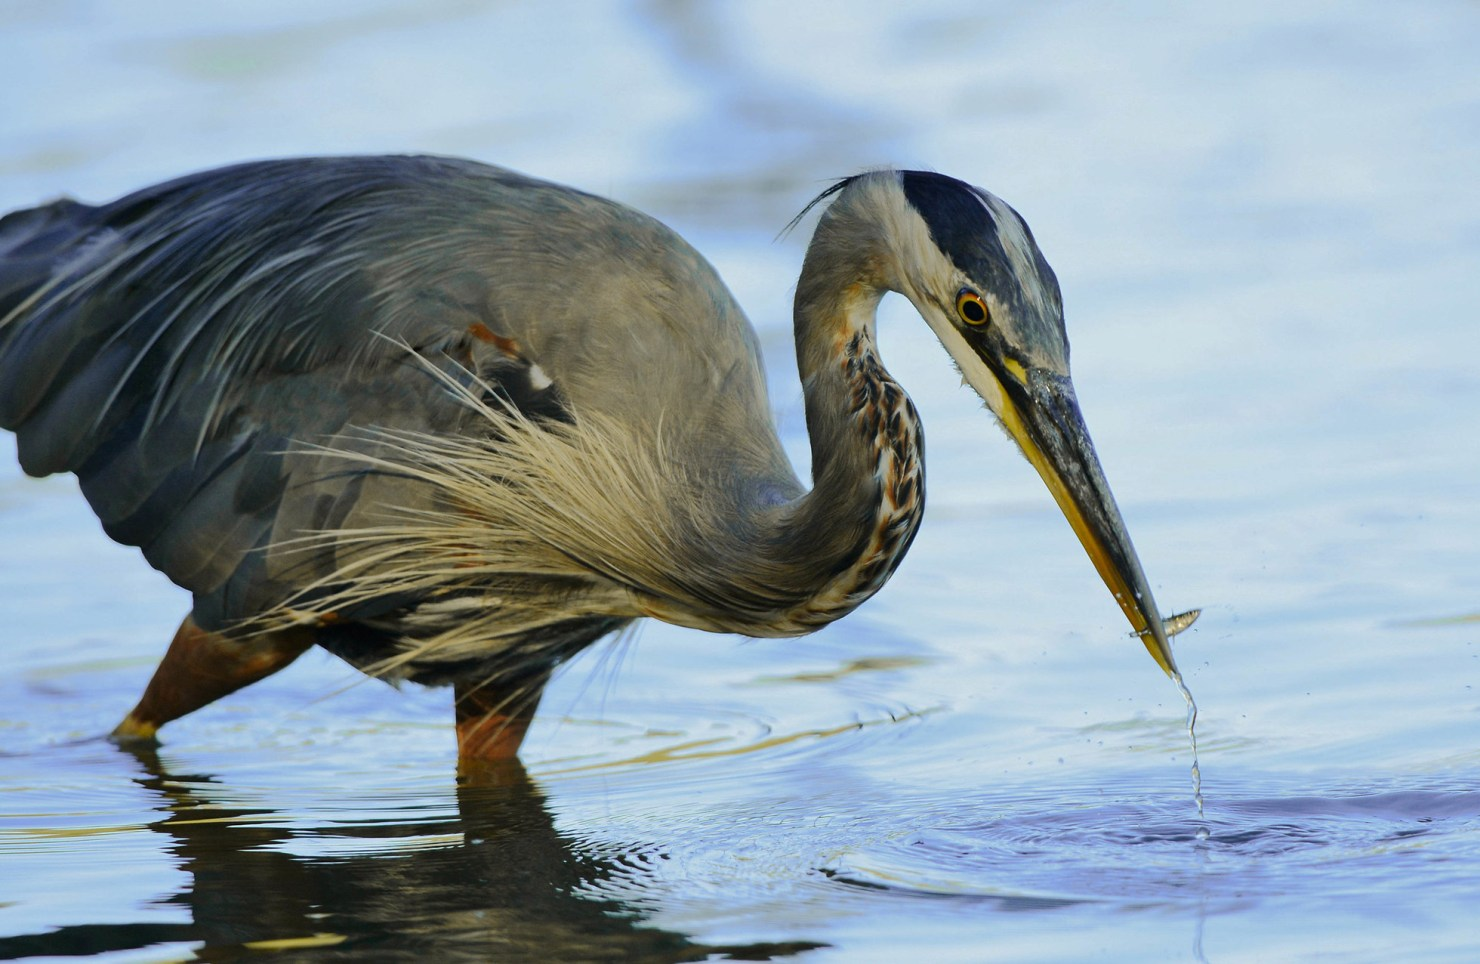 Come by Stanley Park and try to spot a heron!